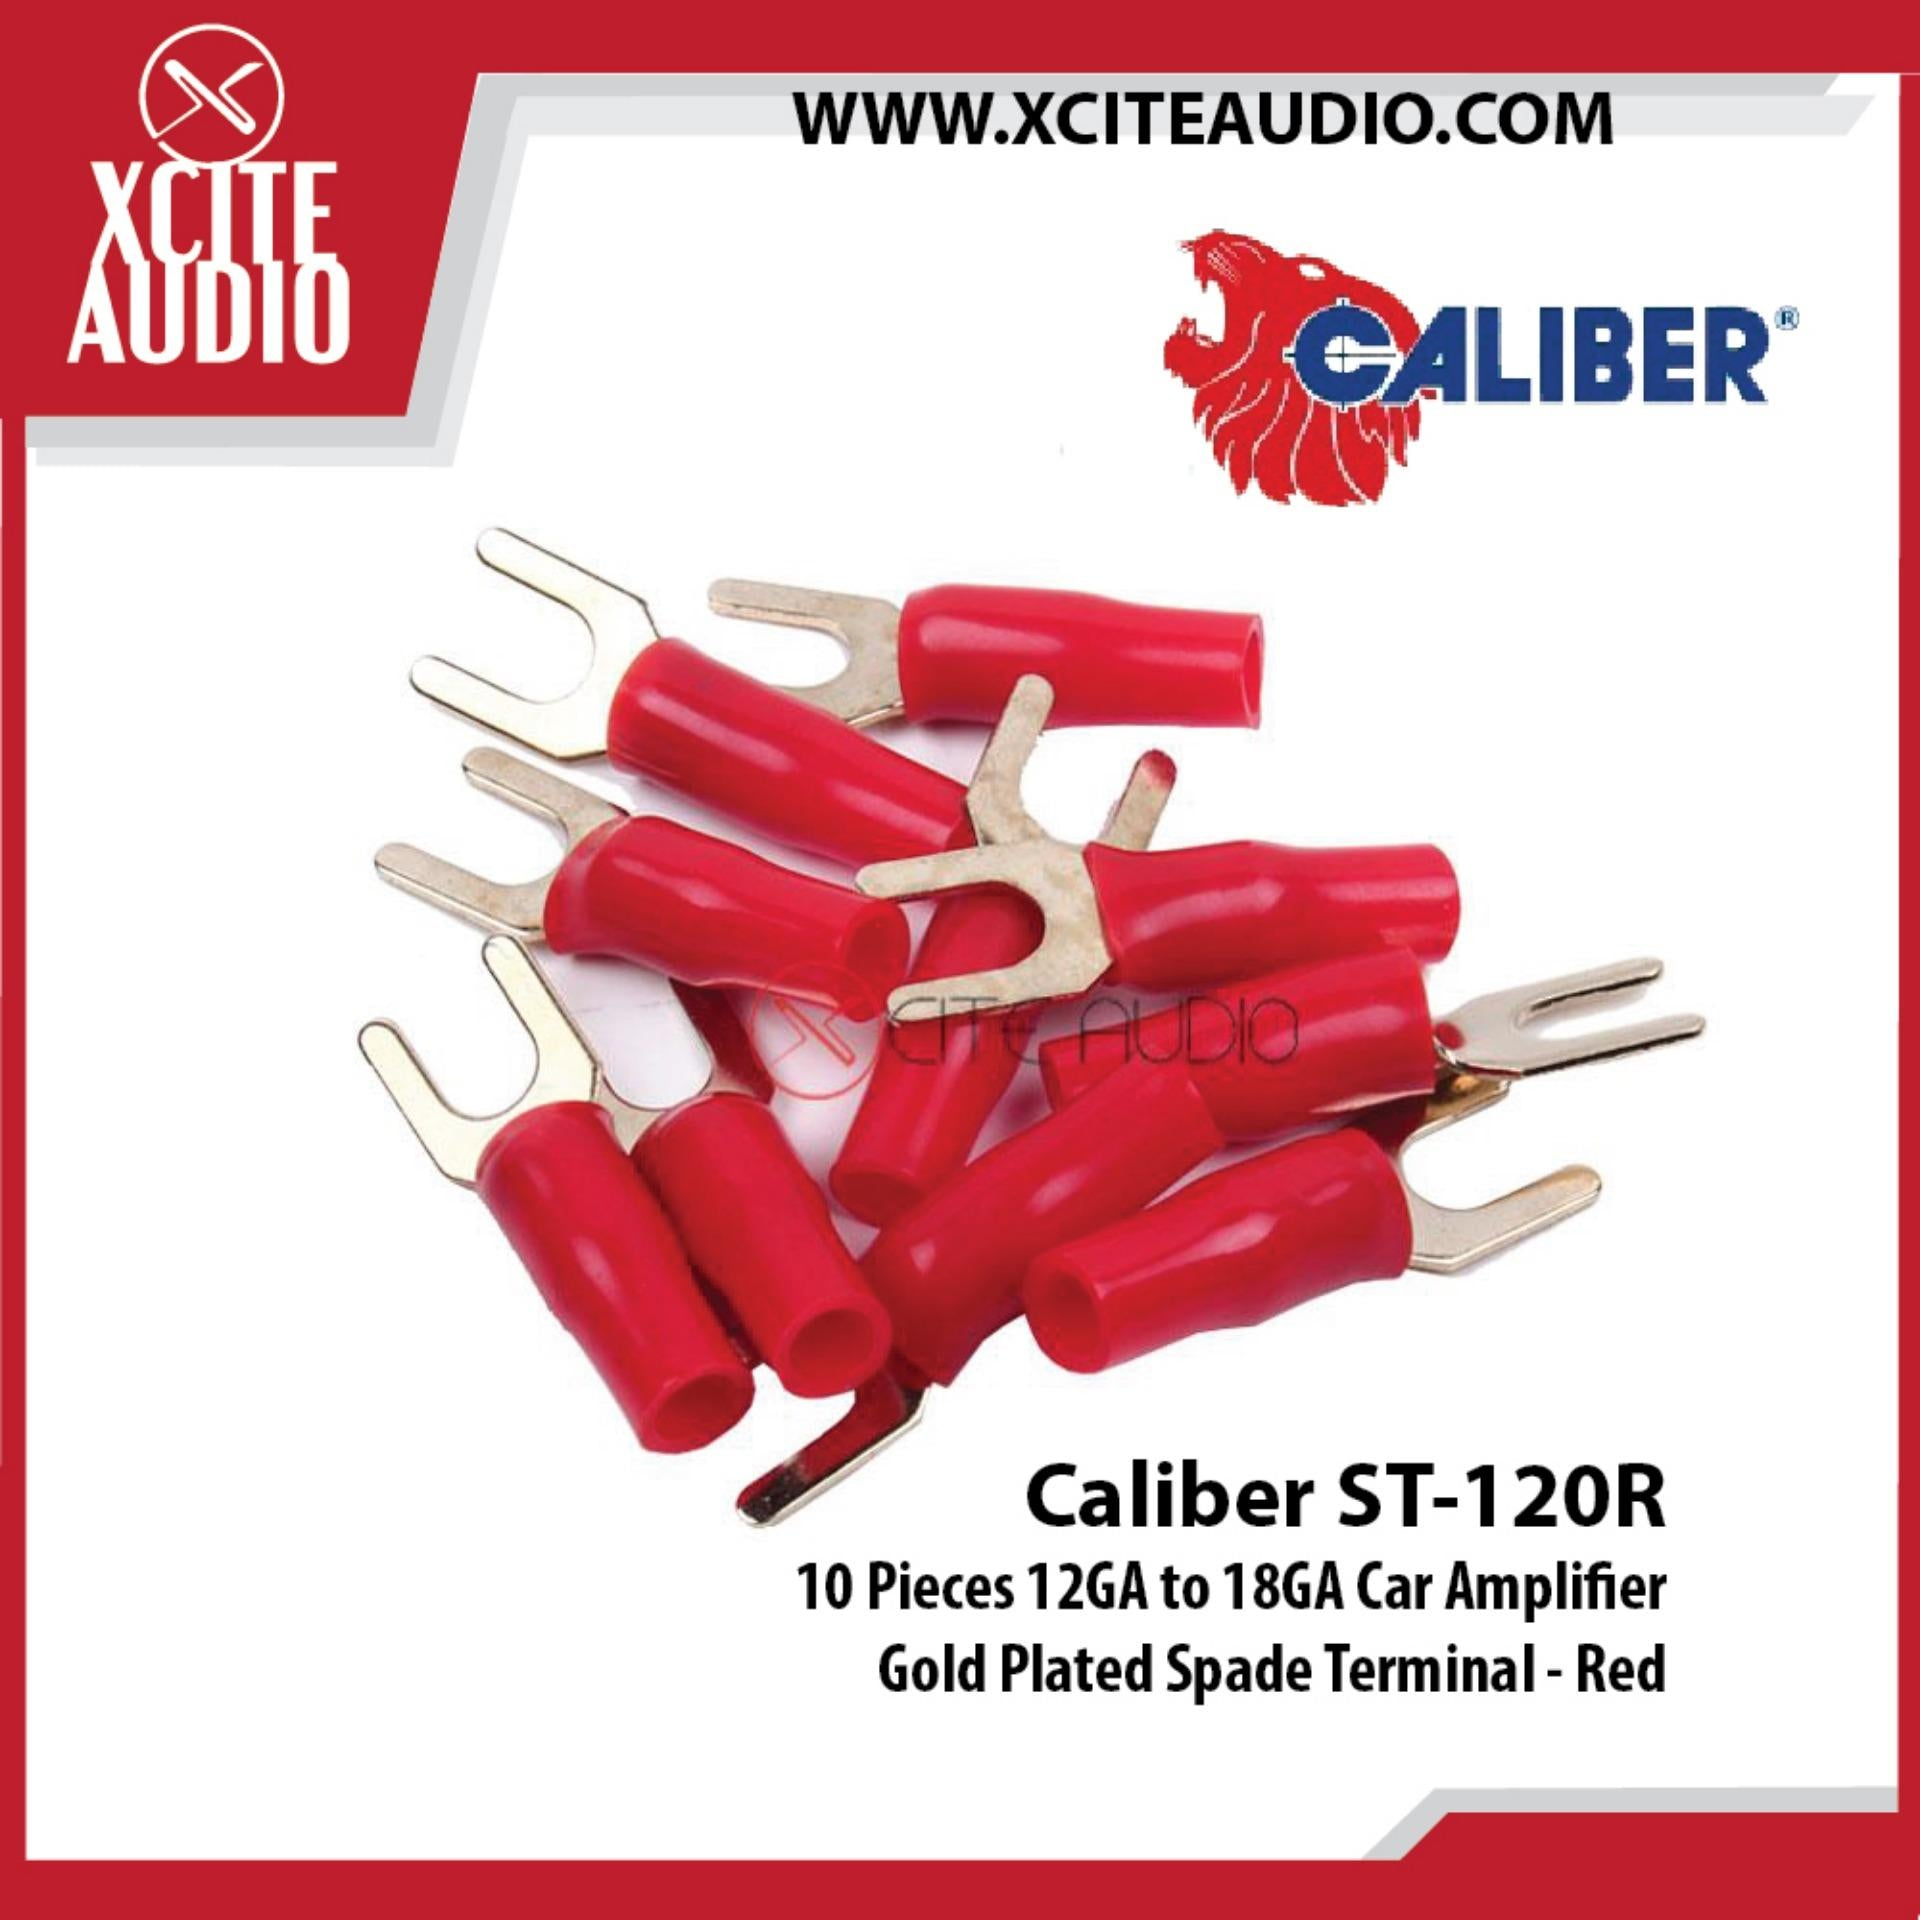 Caliber ST-120R 10 Pieces 12GA to 18GA Car Amplifier Gold Plated Spade Terminal - Red - Xcite Audio